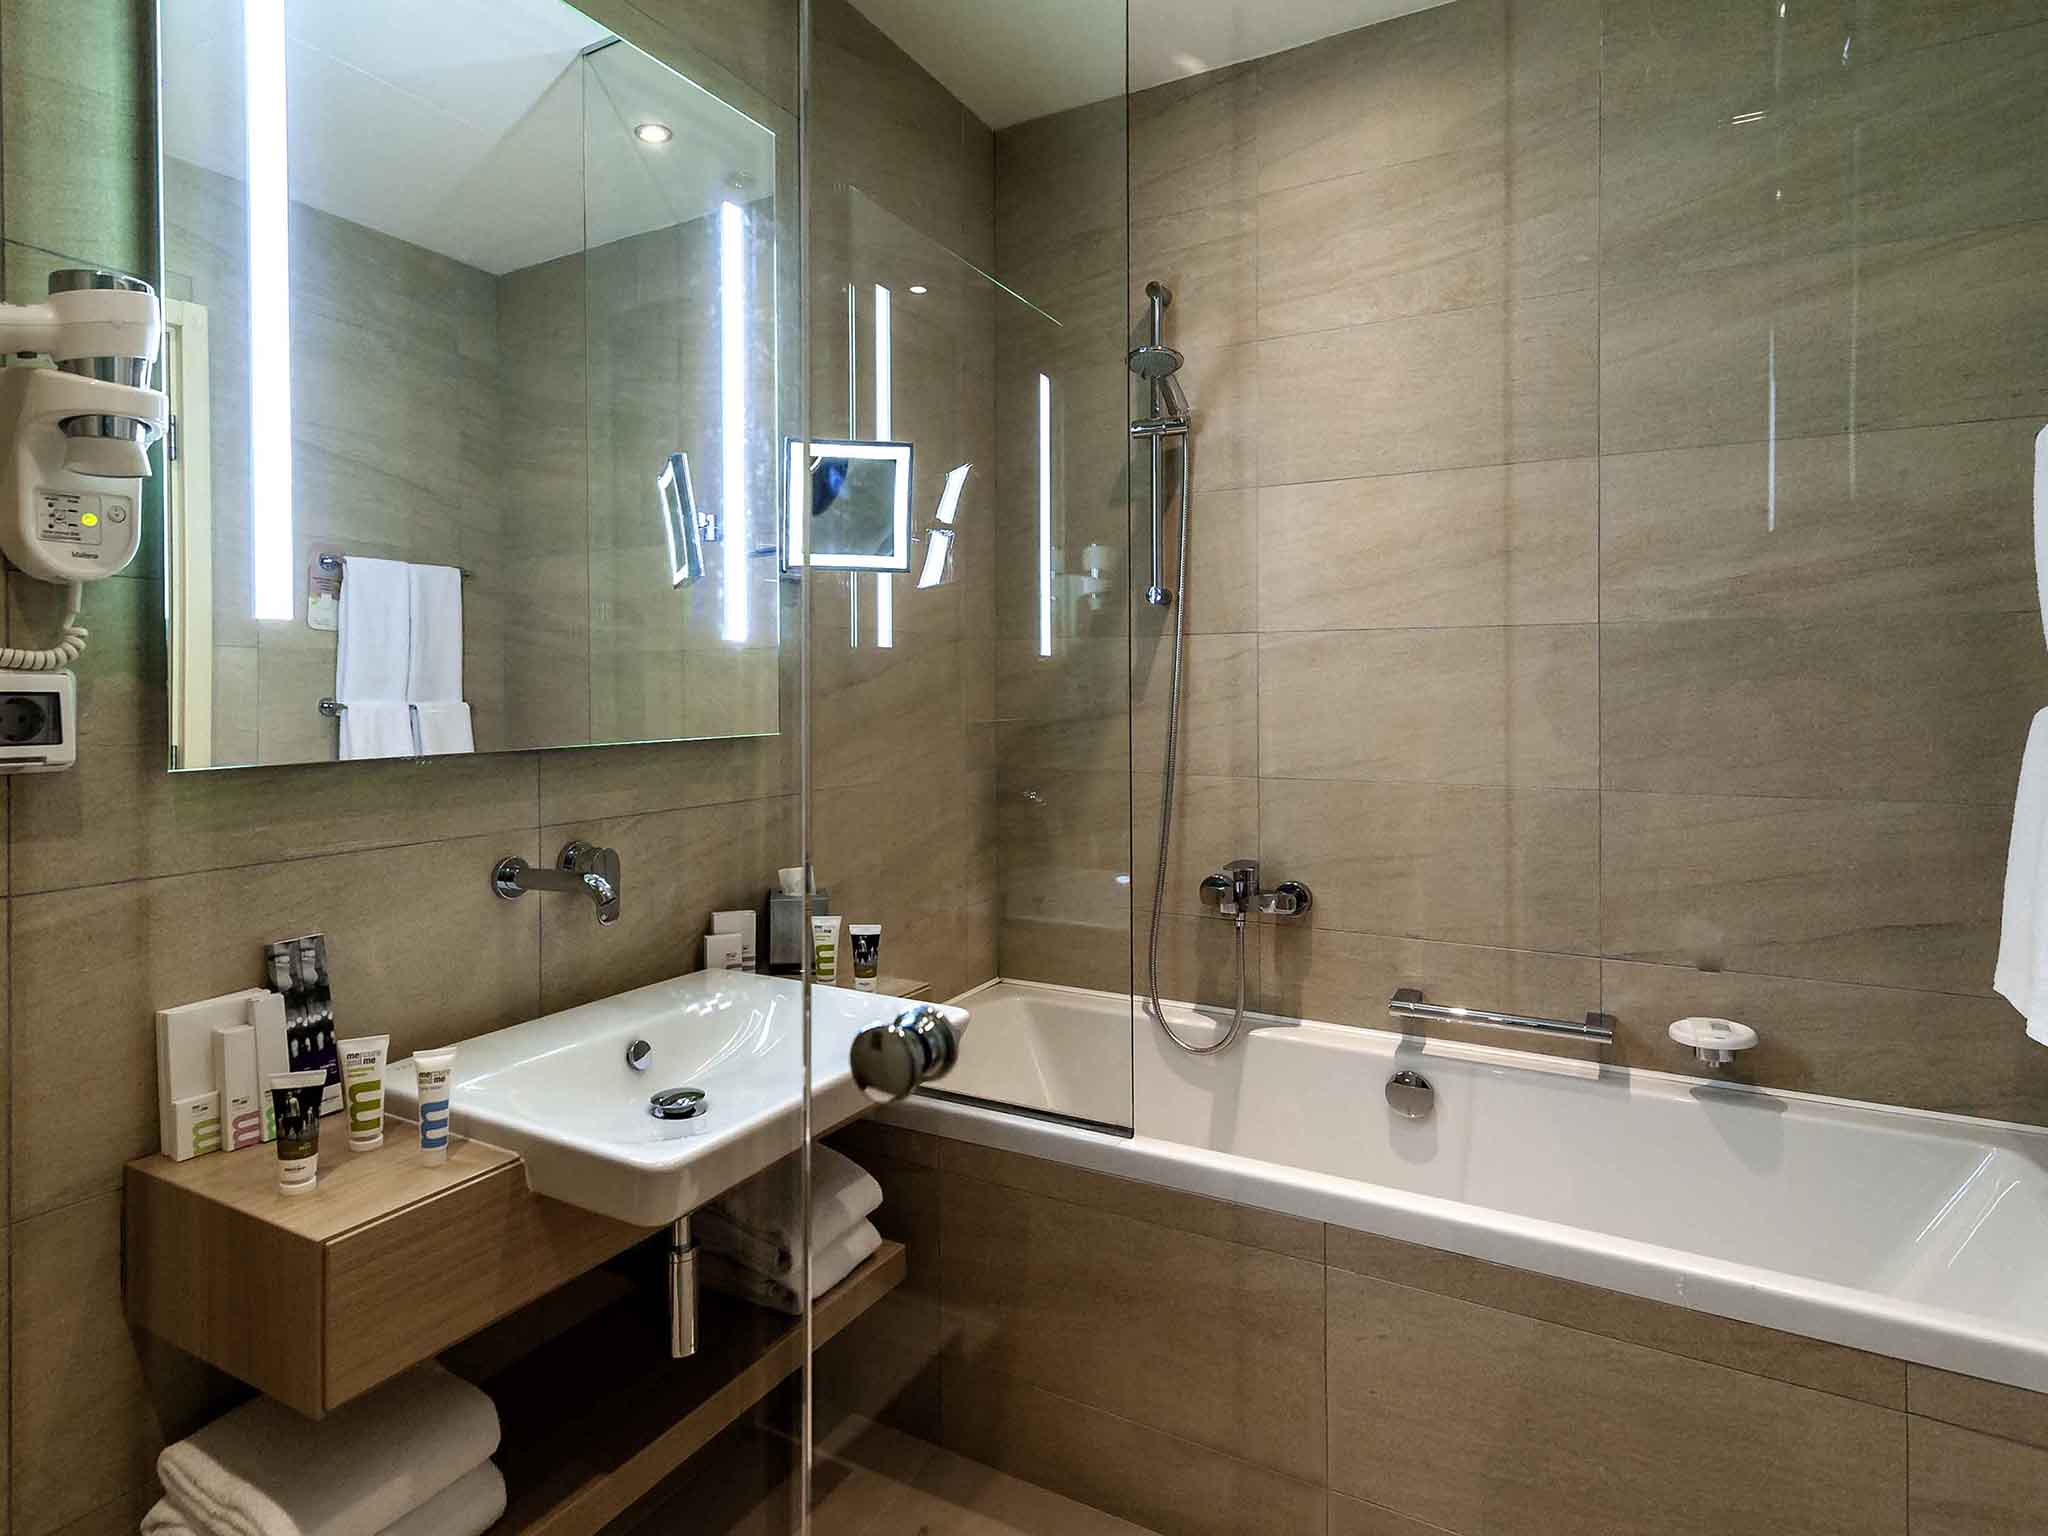 Sochi Hotel Bathrooms - Sochi problems tweets